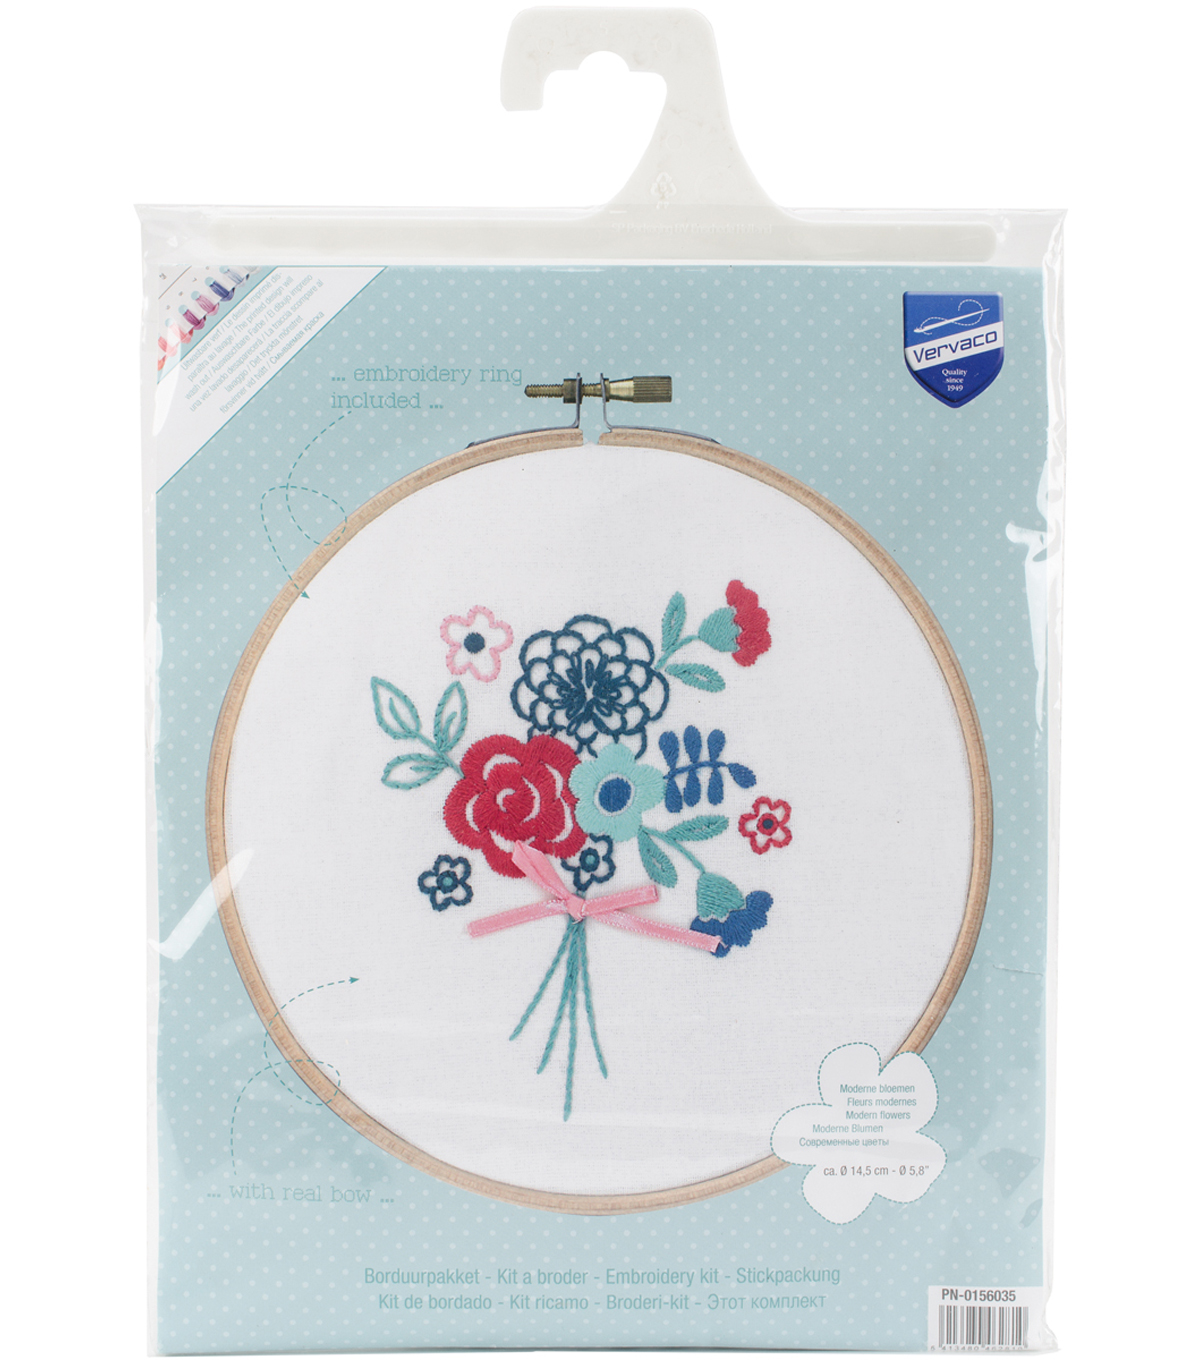 Vervaco 58 Round Stamped Embroidery Kit Modern Flowers With Bow